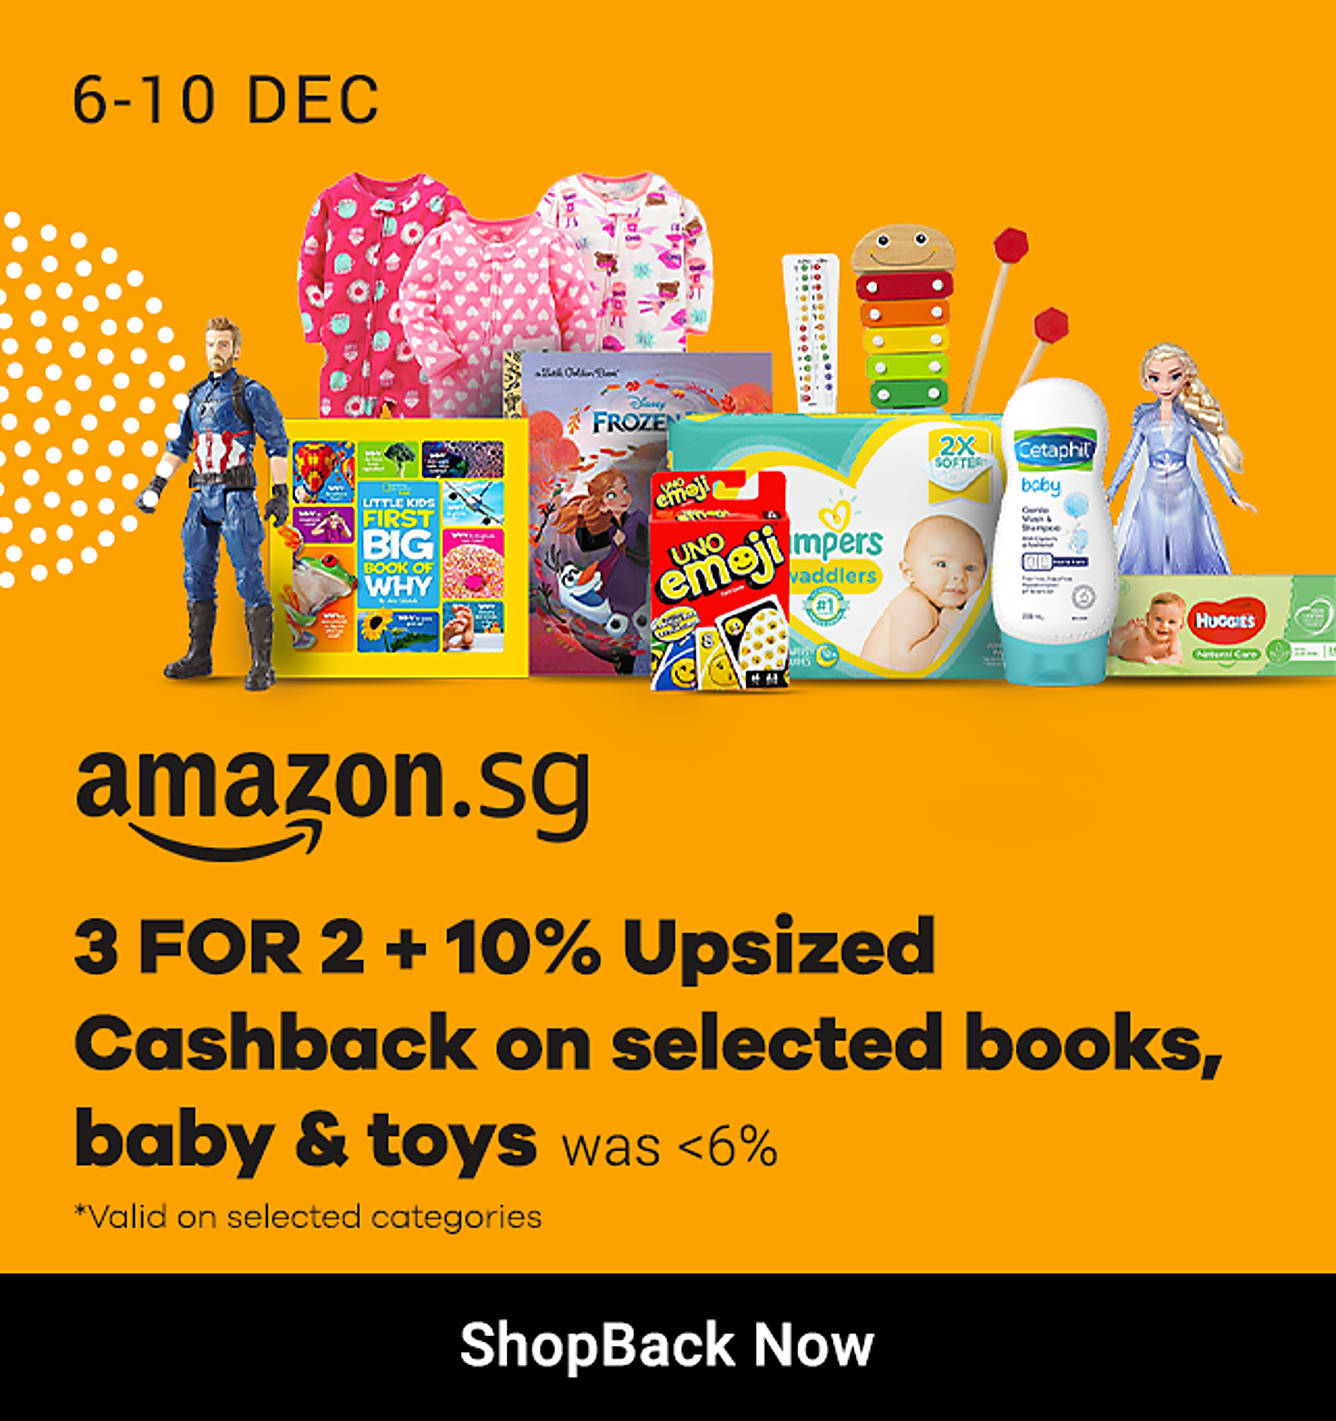 Amazon 3 FOR 2 + 10% Upsized Cashback